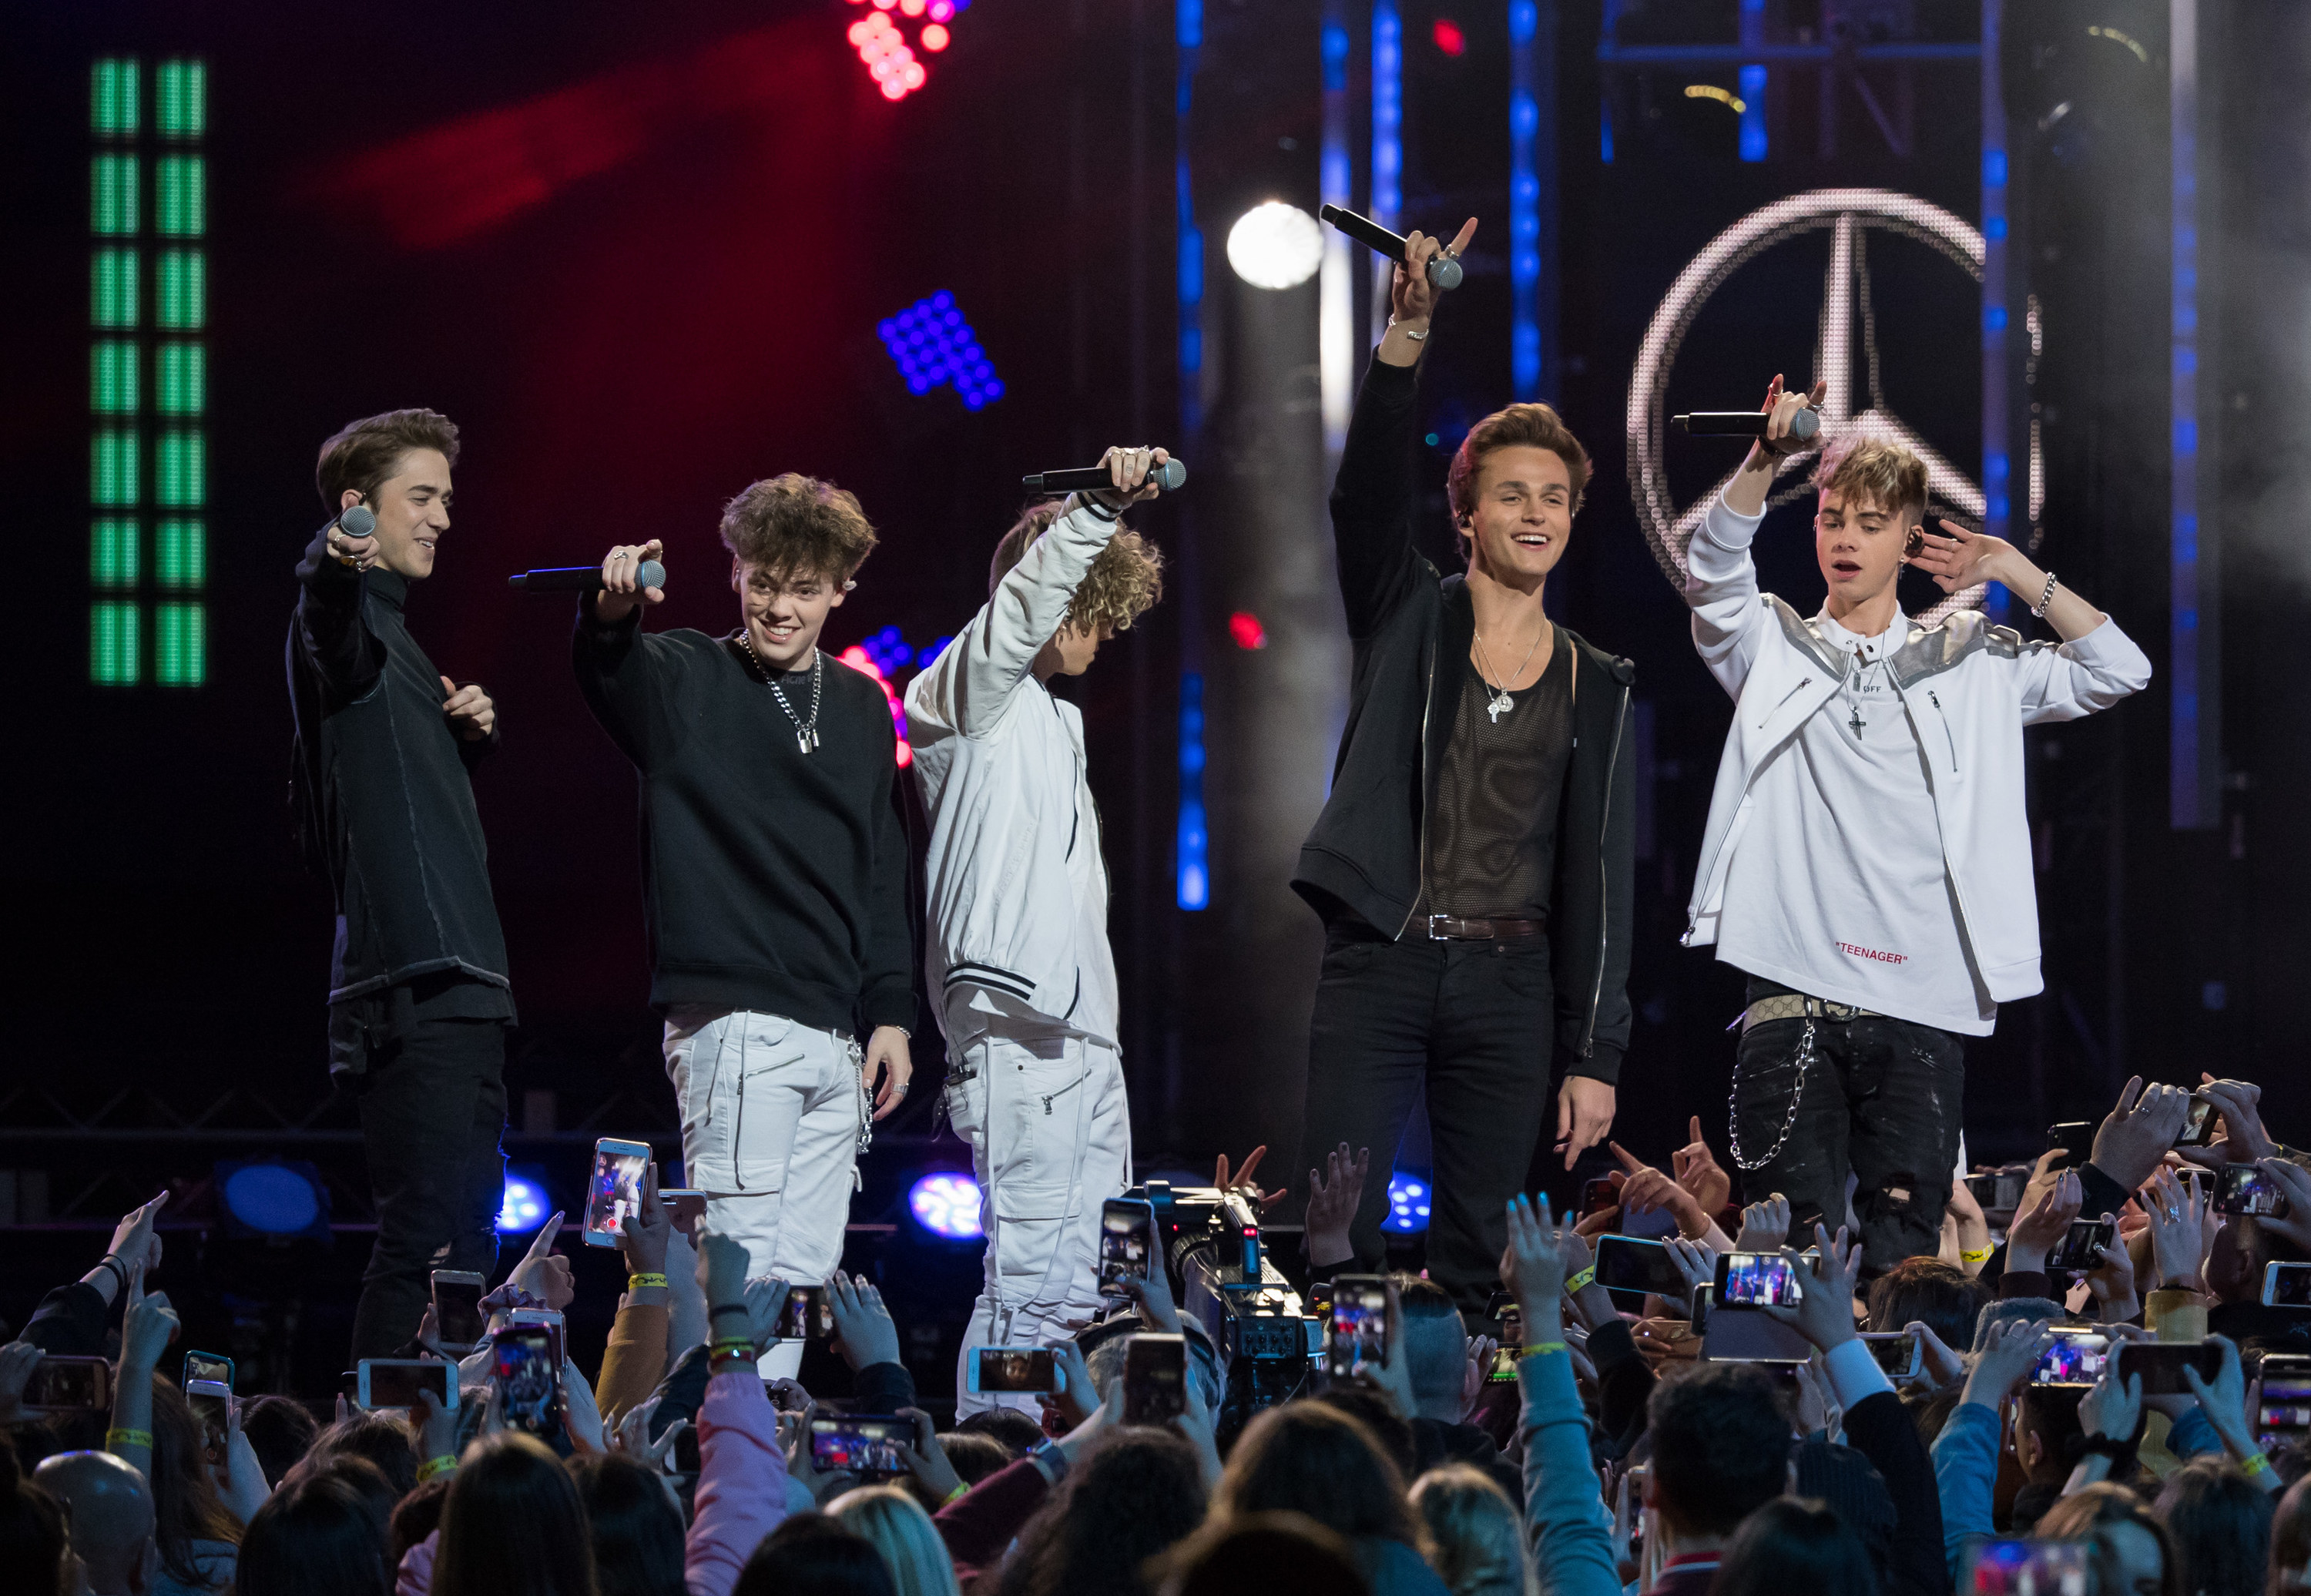 The band smile and hold their microphones in the air on stage